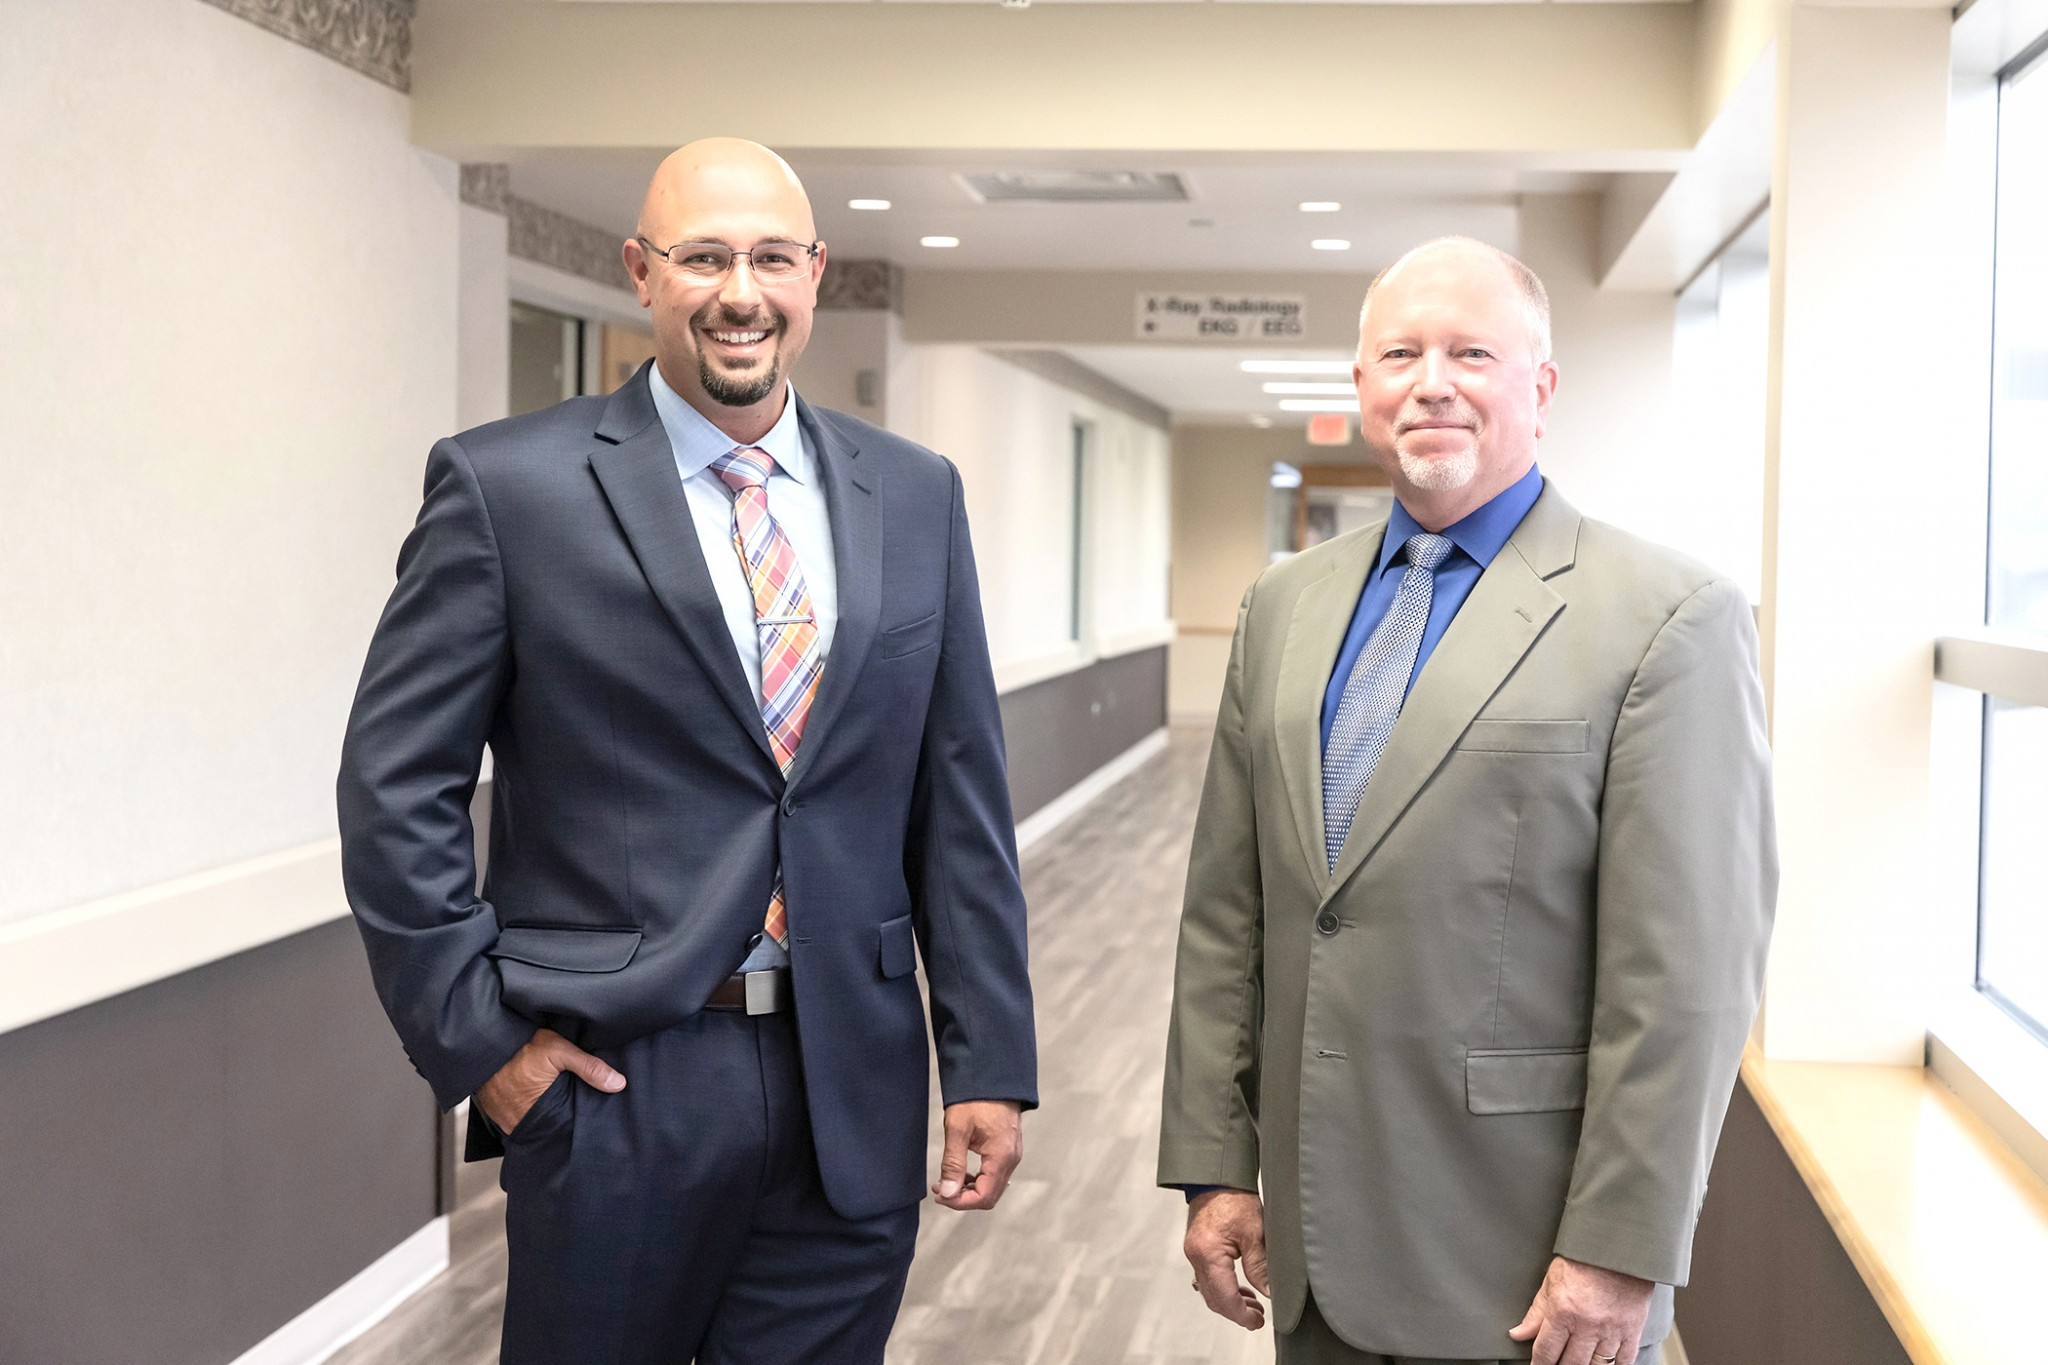 Nick Marsico (left), will become Magruder Hospital's new President and CEO when Todd Almendinger (right) steps down at the end of September. Almendinger will be retained as Hospital Senior Advisor until January 2021, when he will begin full retirement. (Submitted photo)